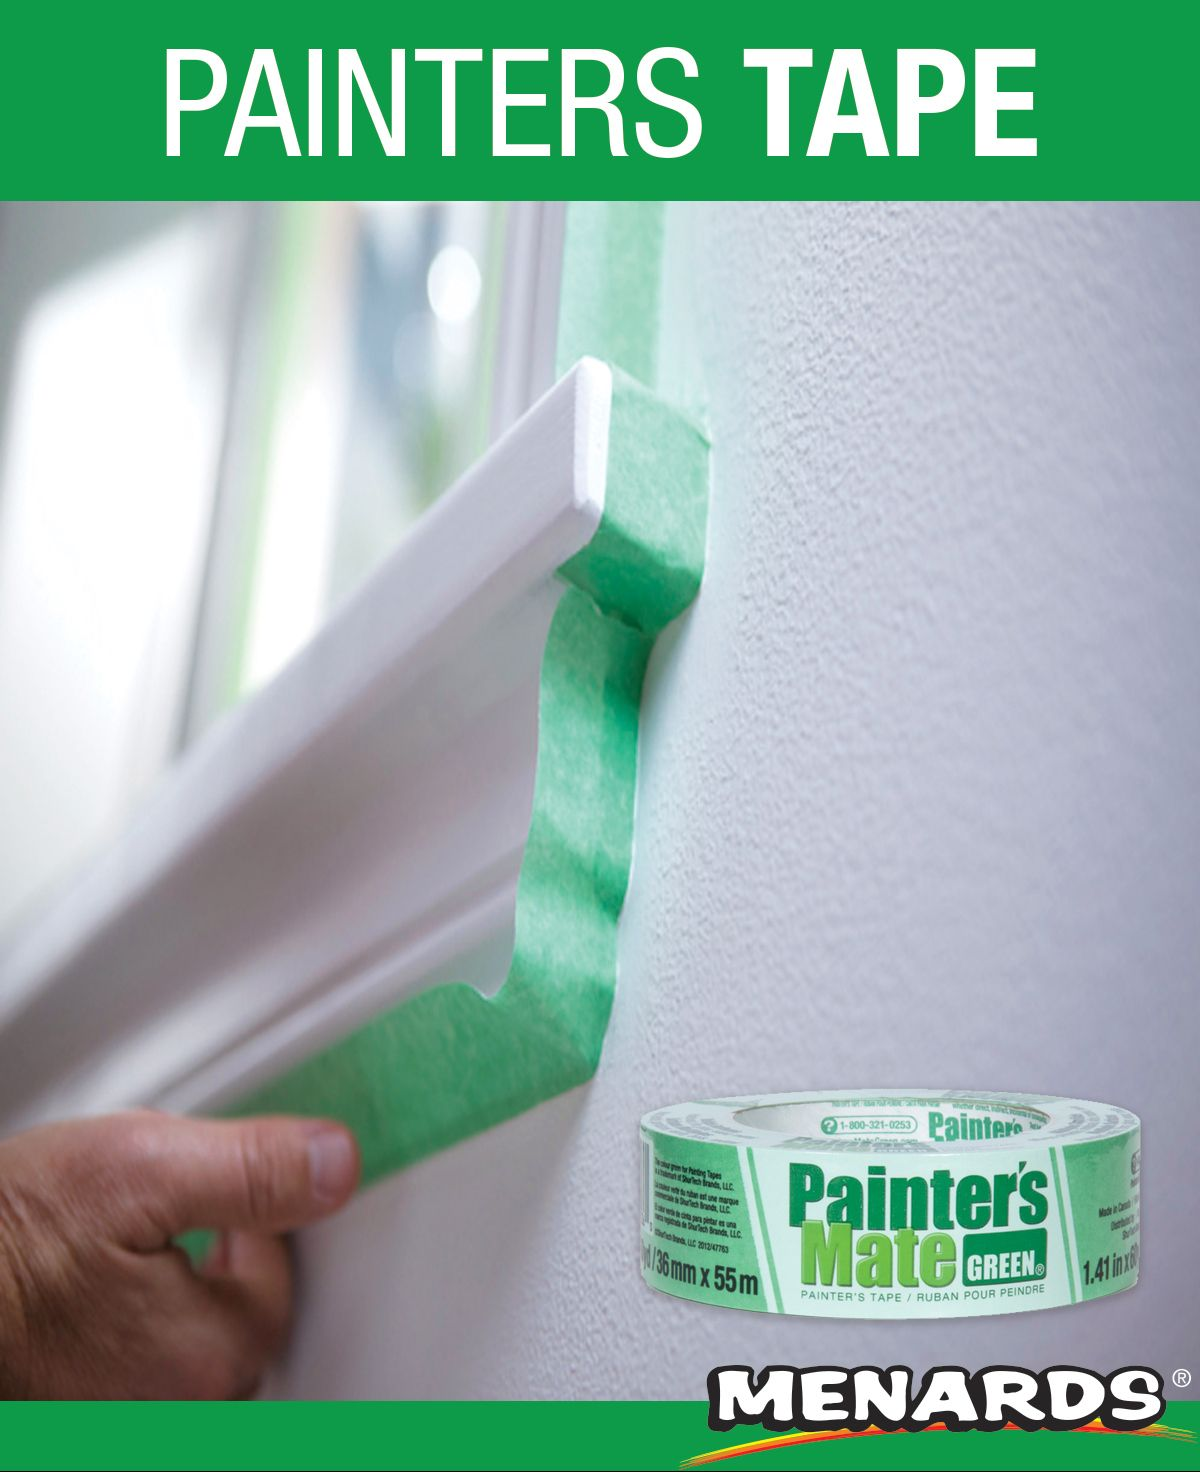 Painter S Mate Green 8 Day Painting Tape Features A Rubber Based Adhesive System With Moderate Tack And Excellent Adhes Tape Painting Paint Line Painters Tape